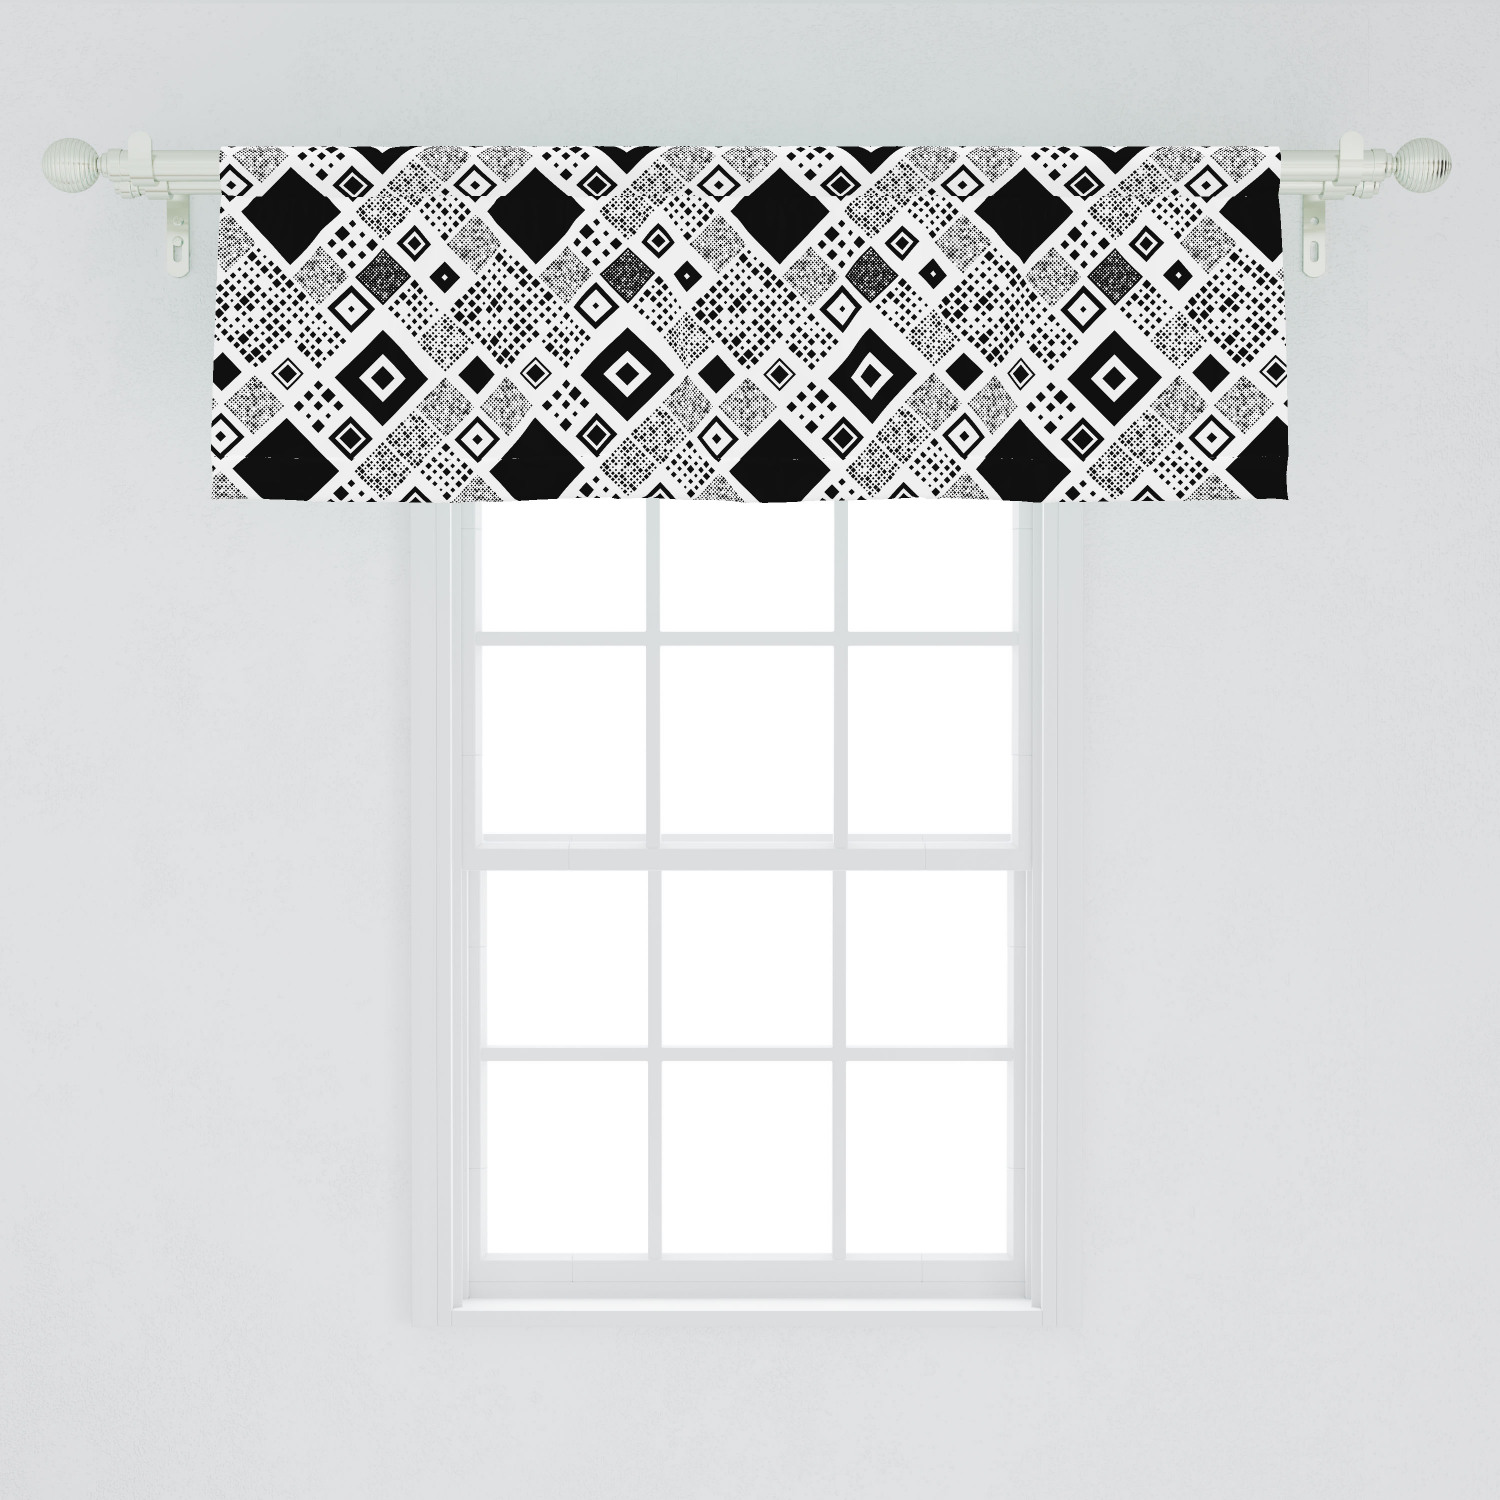 Black And White Window Valance Geometrical Diagonal Pattern With Various Different Squares Contemporary Curtain Valance For Kitchen Bedroom Decor With Rod Pocket By Ambesonne Walmart Com Walmart Com